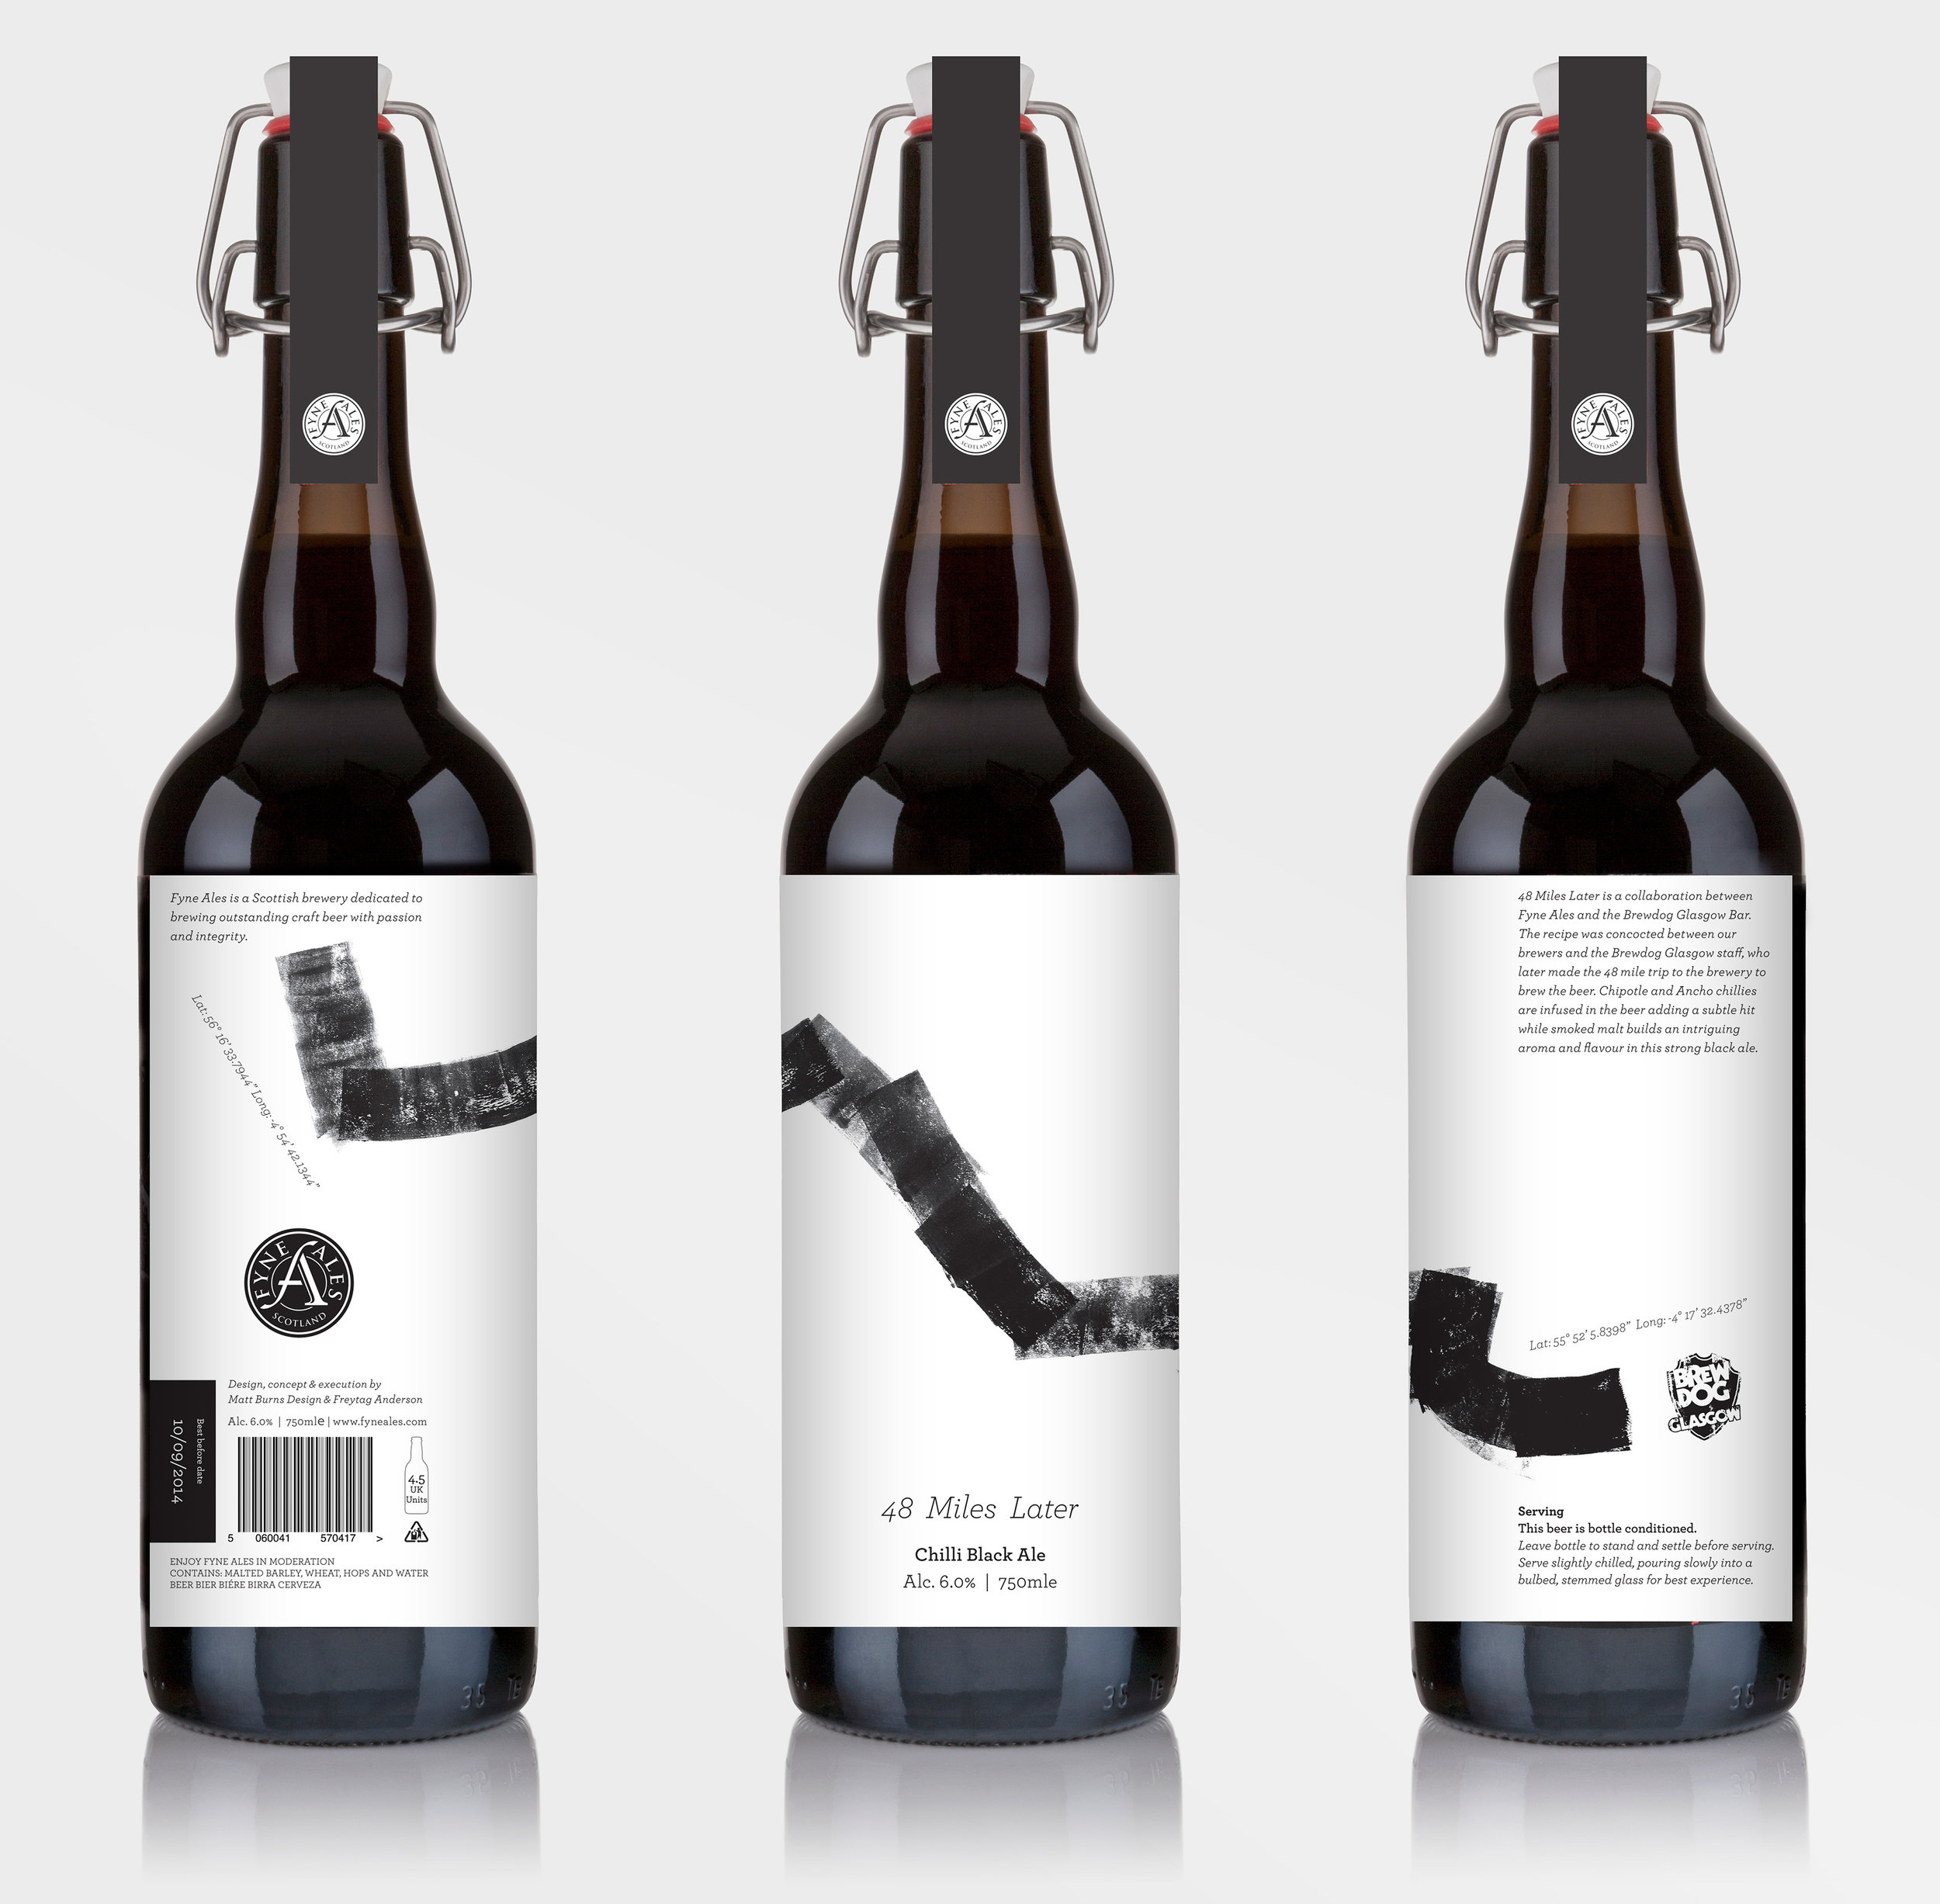 Copy of <b>Fyne Ales & Brewdog</b><br>From inception to creation, a true collaboration 48 miles later...